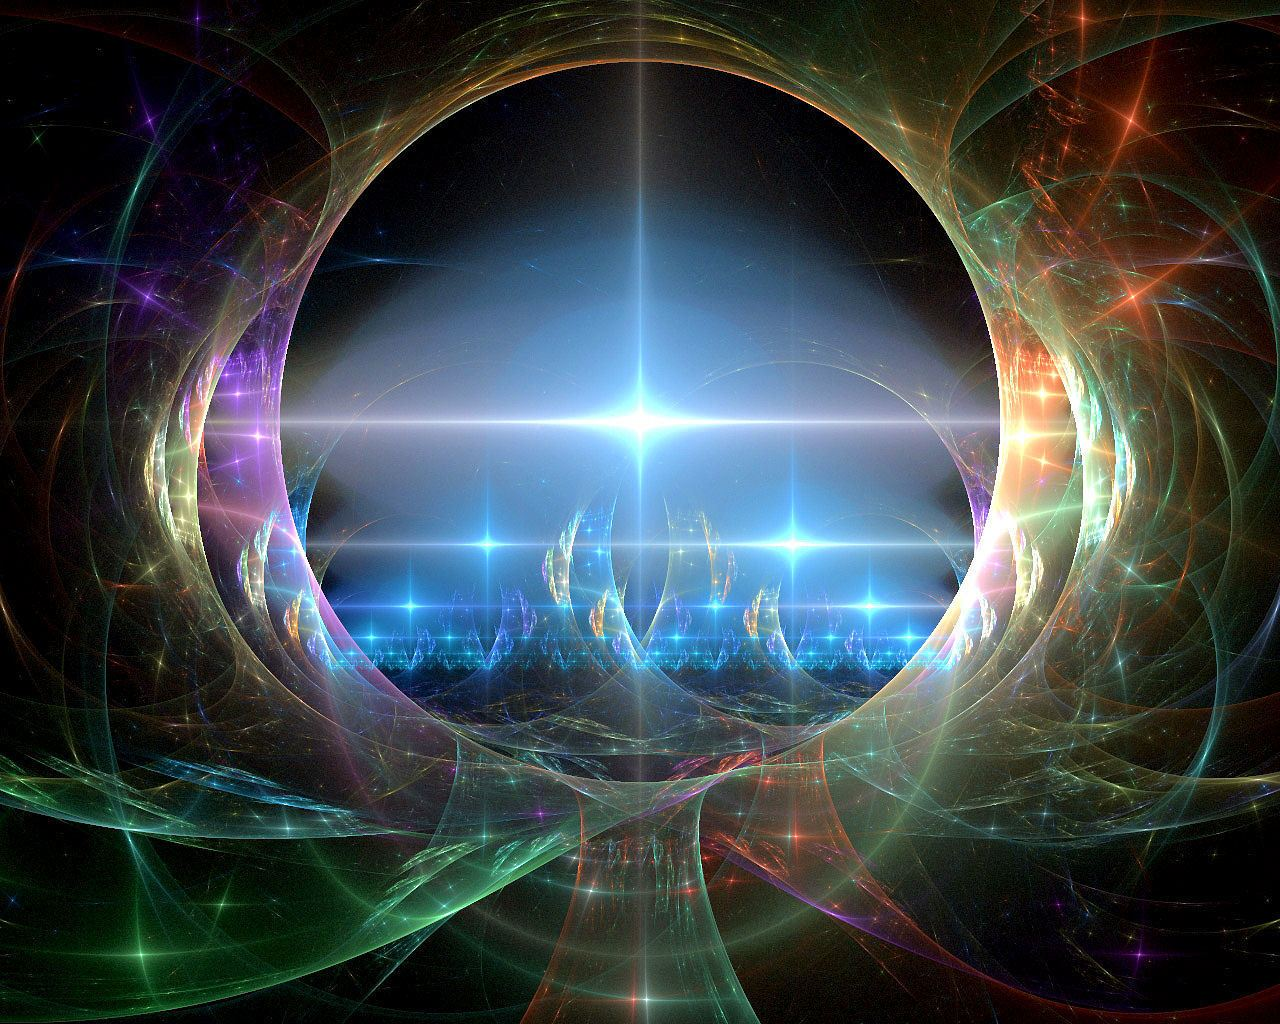 The universe is eternal, infinite and vibrant, a conscious cosmos